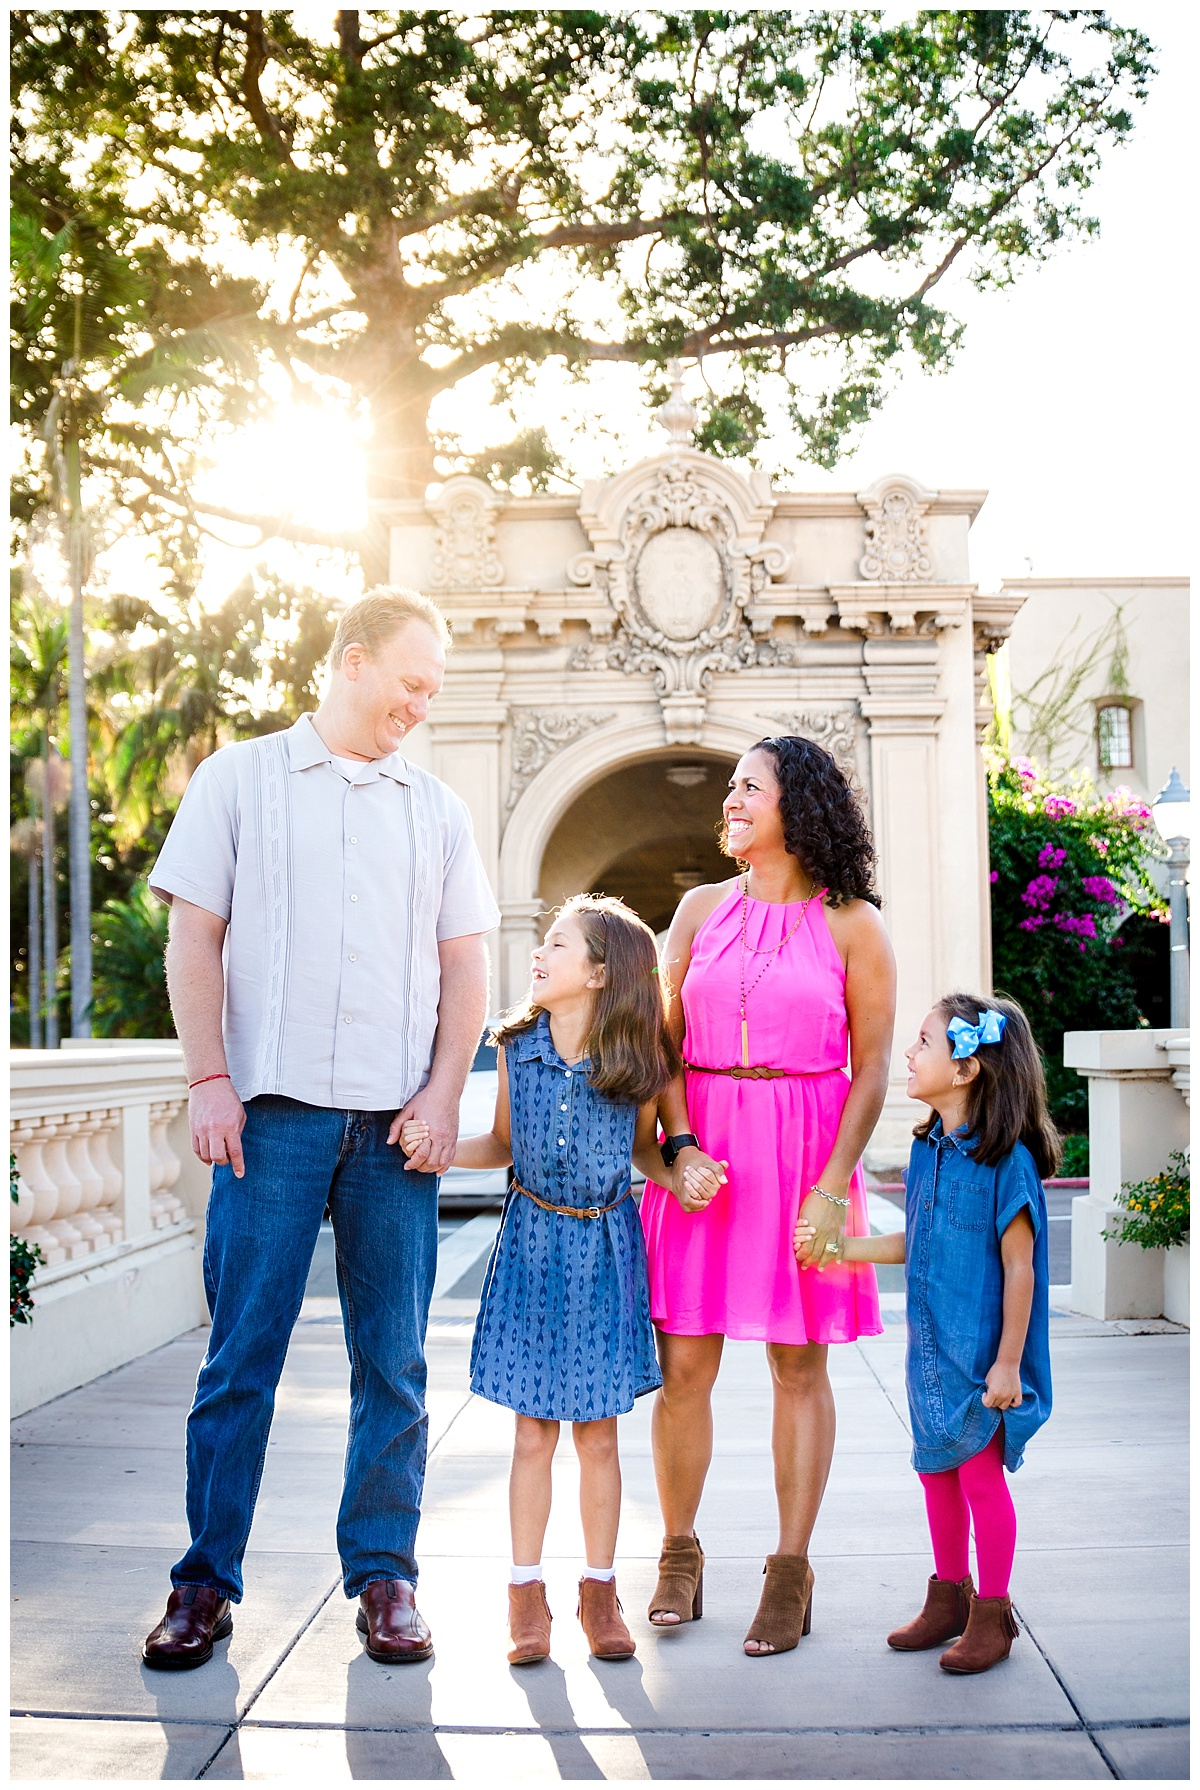 san diego, balboa park, family portrait photographer, san diego family portrait photographer, magenta dress, family with two girls, what to wear to a photo session